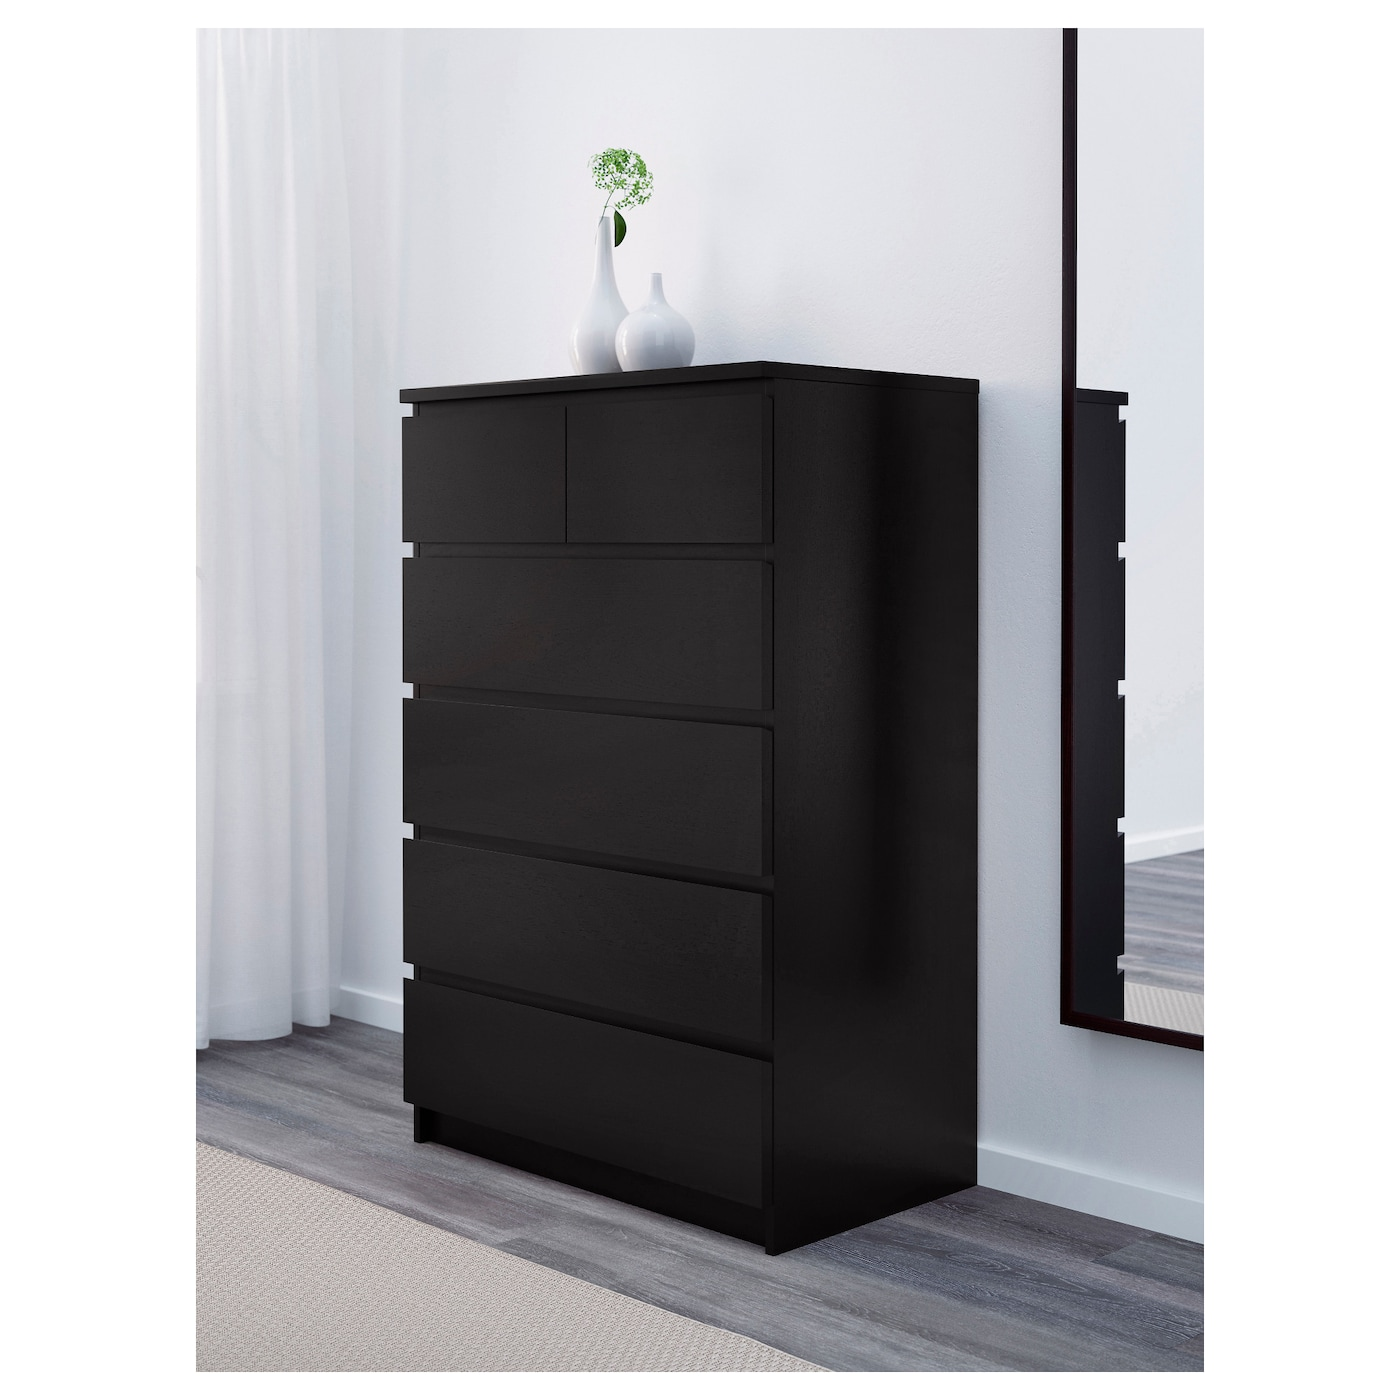 Image Result For Hemnes Kommode Ikea